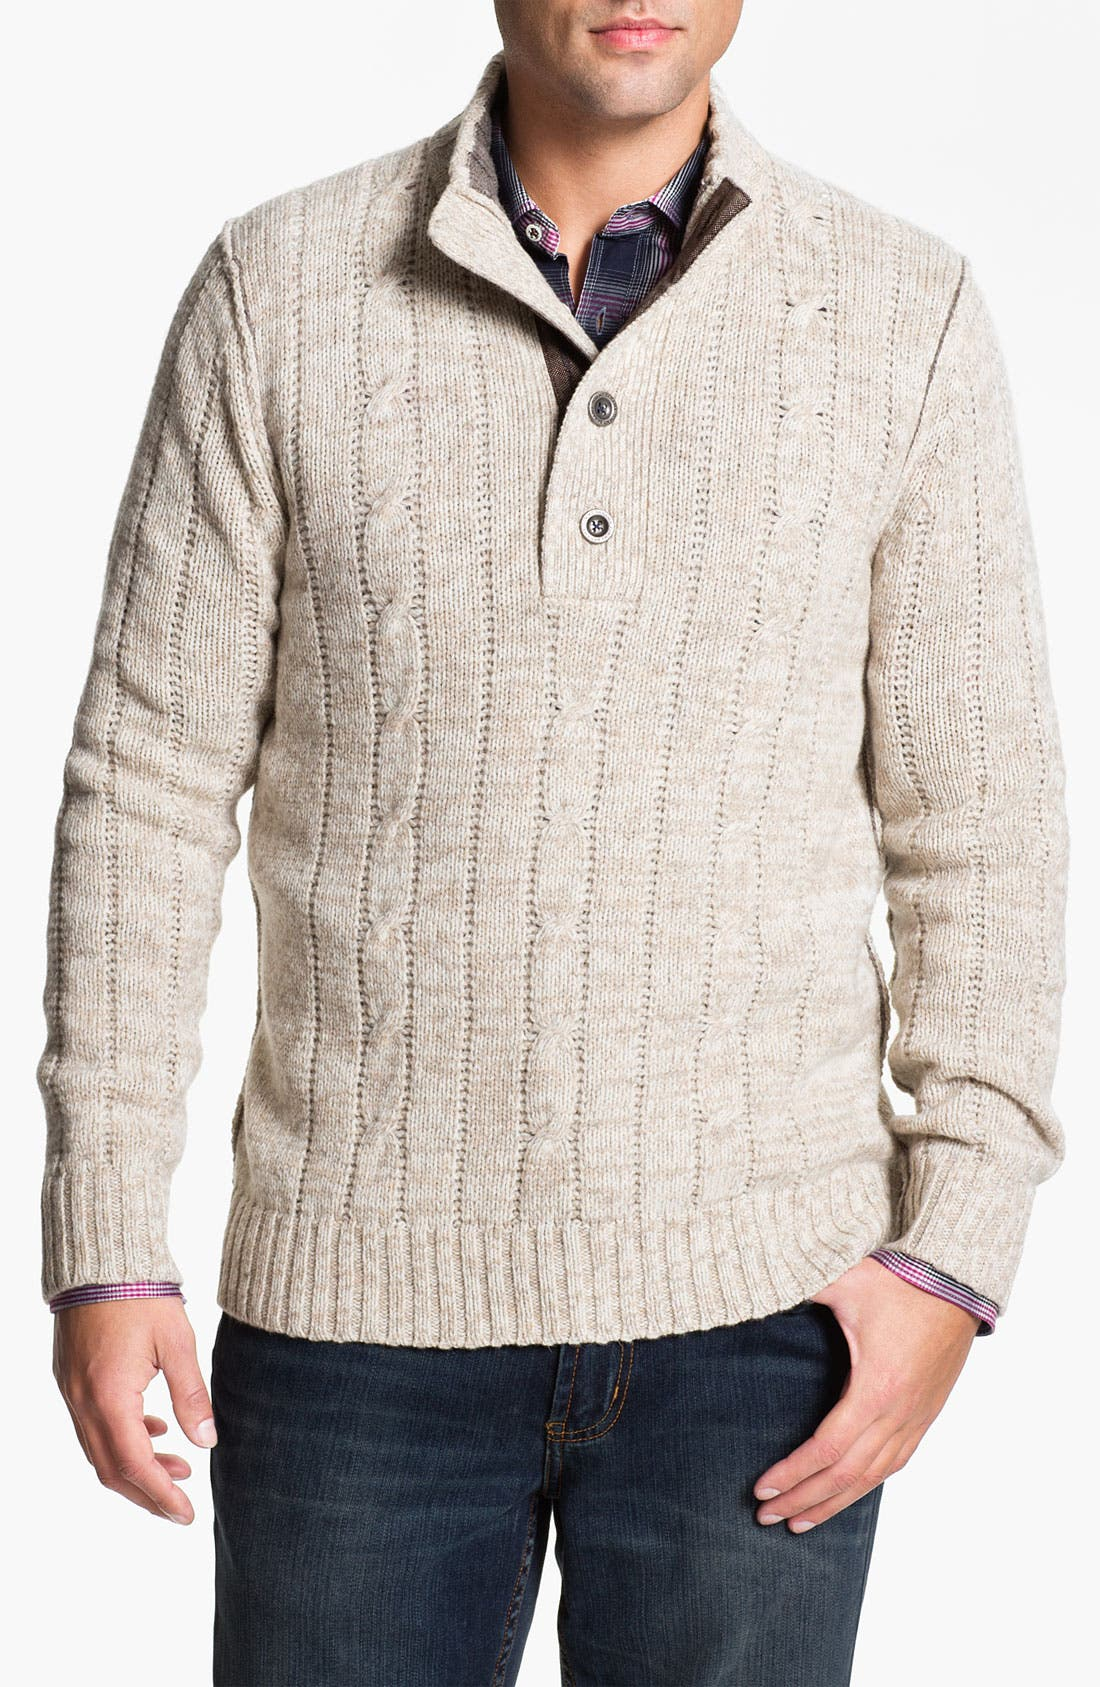 Main Image - Tommy Bahama 'Outer Banks' Mock Neck Cable Knit Sweater